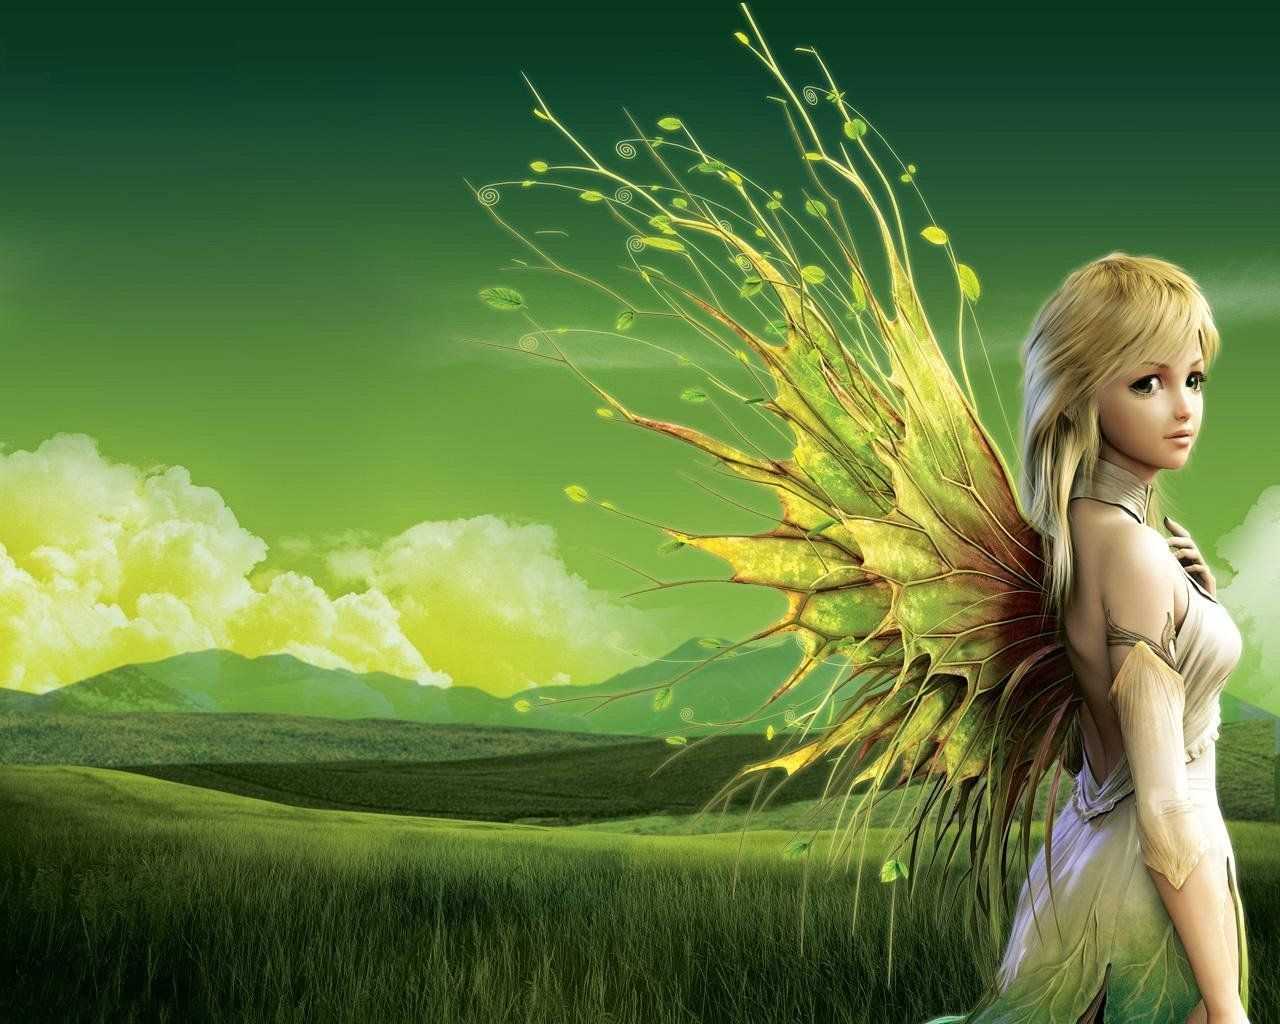 Animated fairy wallpapers group 19201200 beautiful fairies animated fairy wallpapers group 19201200 beautiful fairies wallpapers adorable wallpapers altavistaventures Image collections